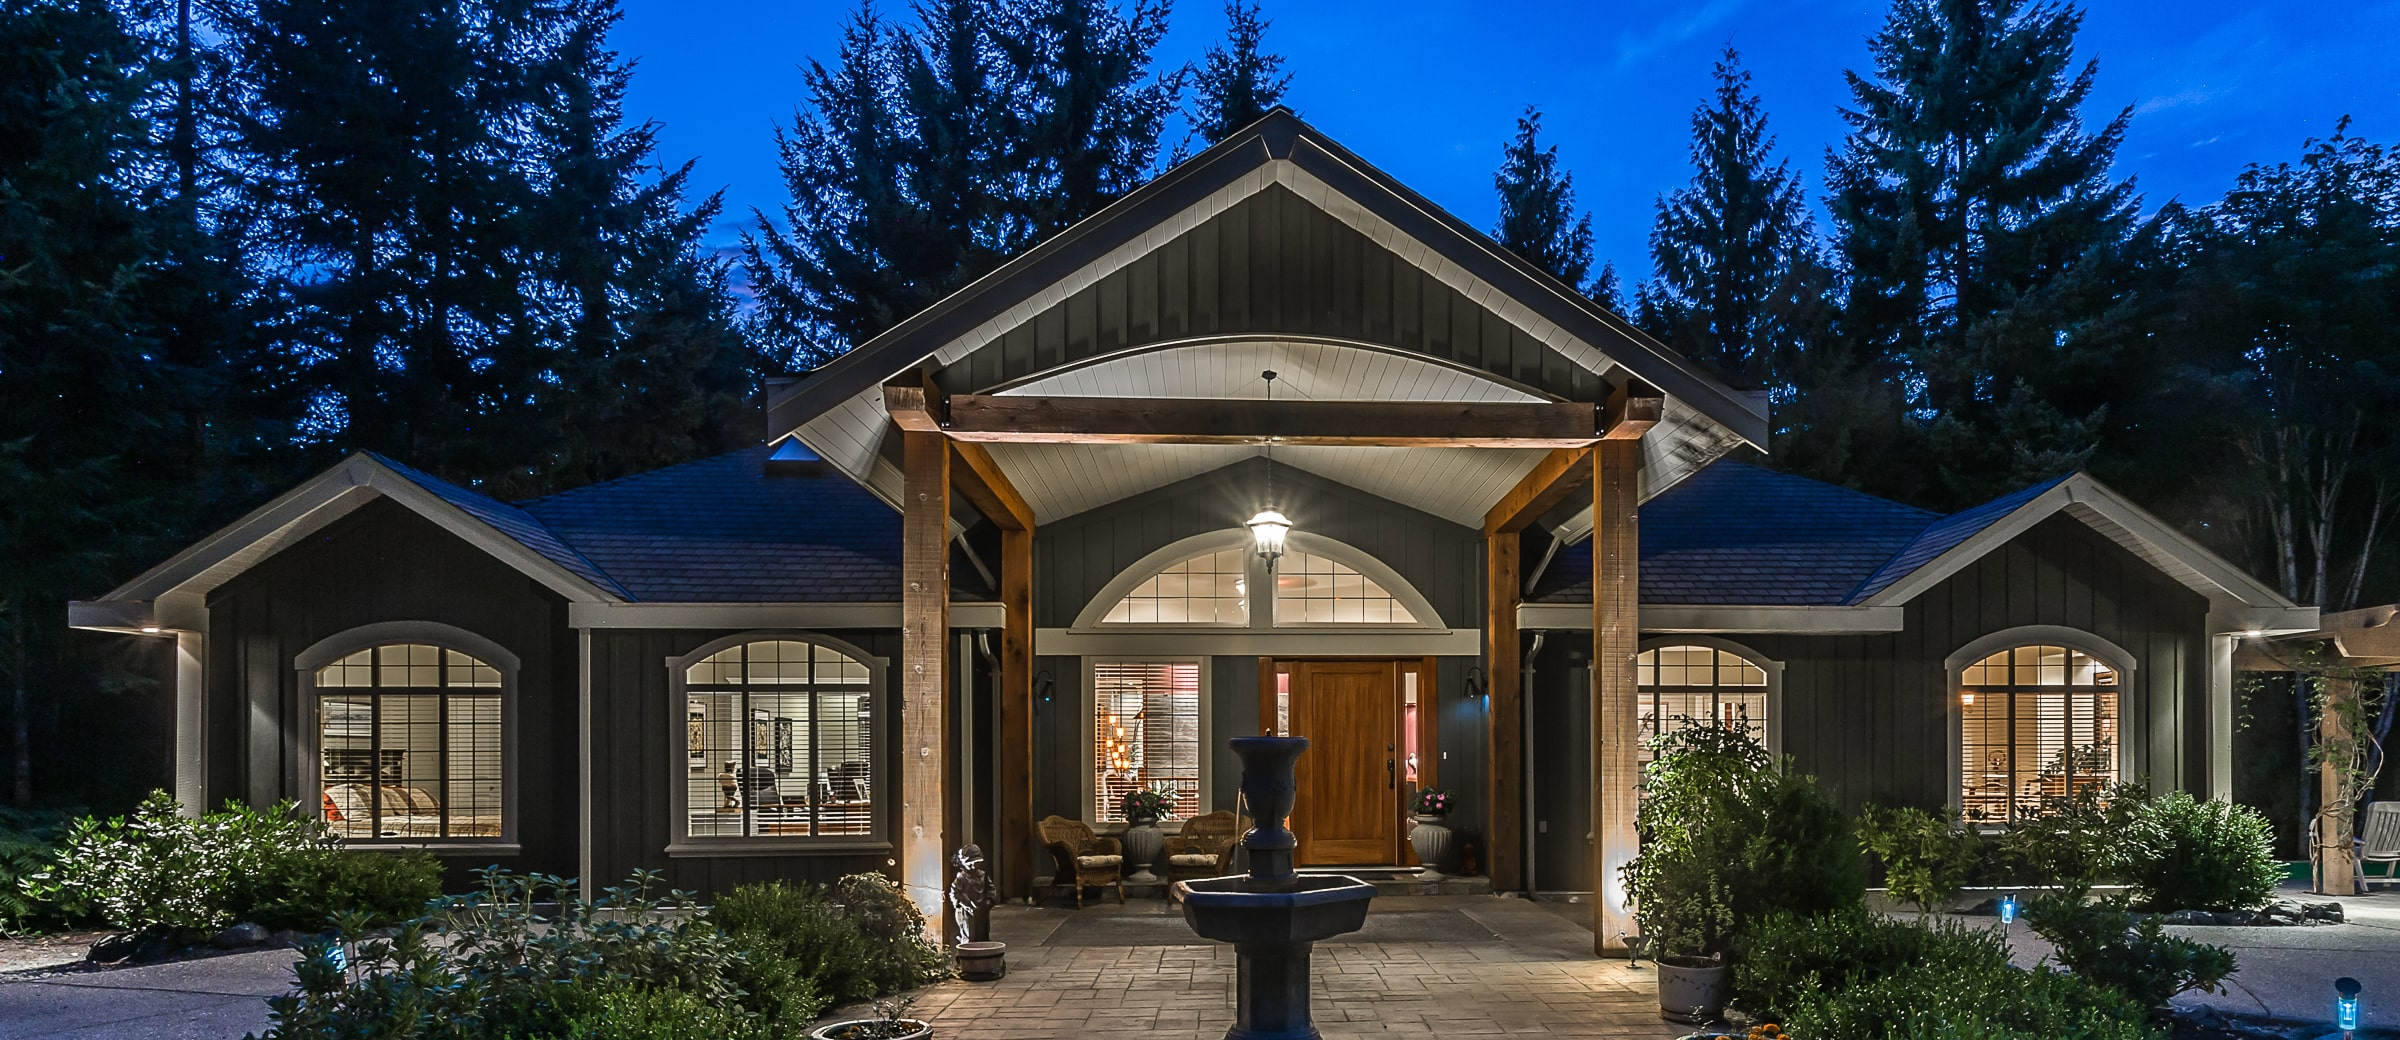 Slideshow Image 0 - Parksville Luxury Homes For Sale